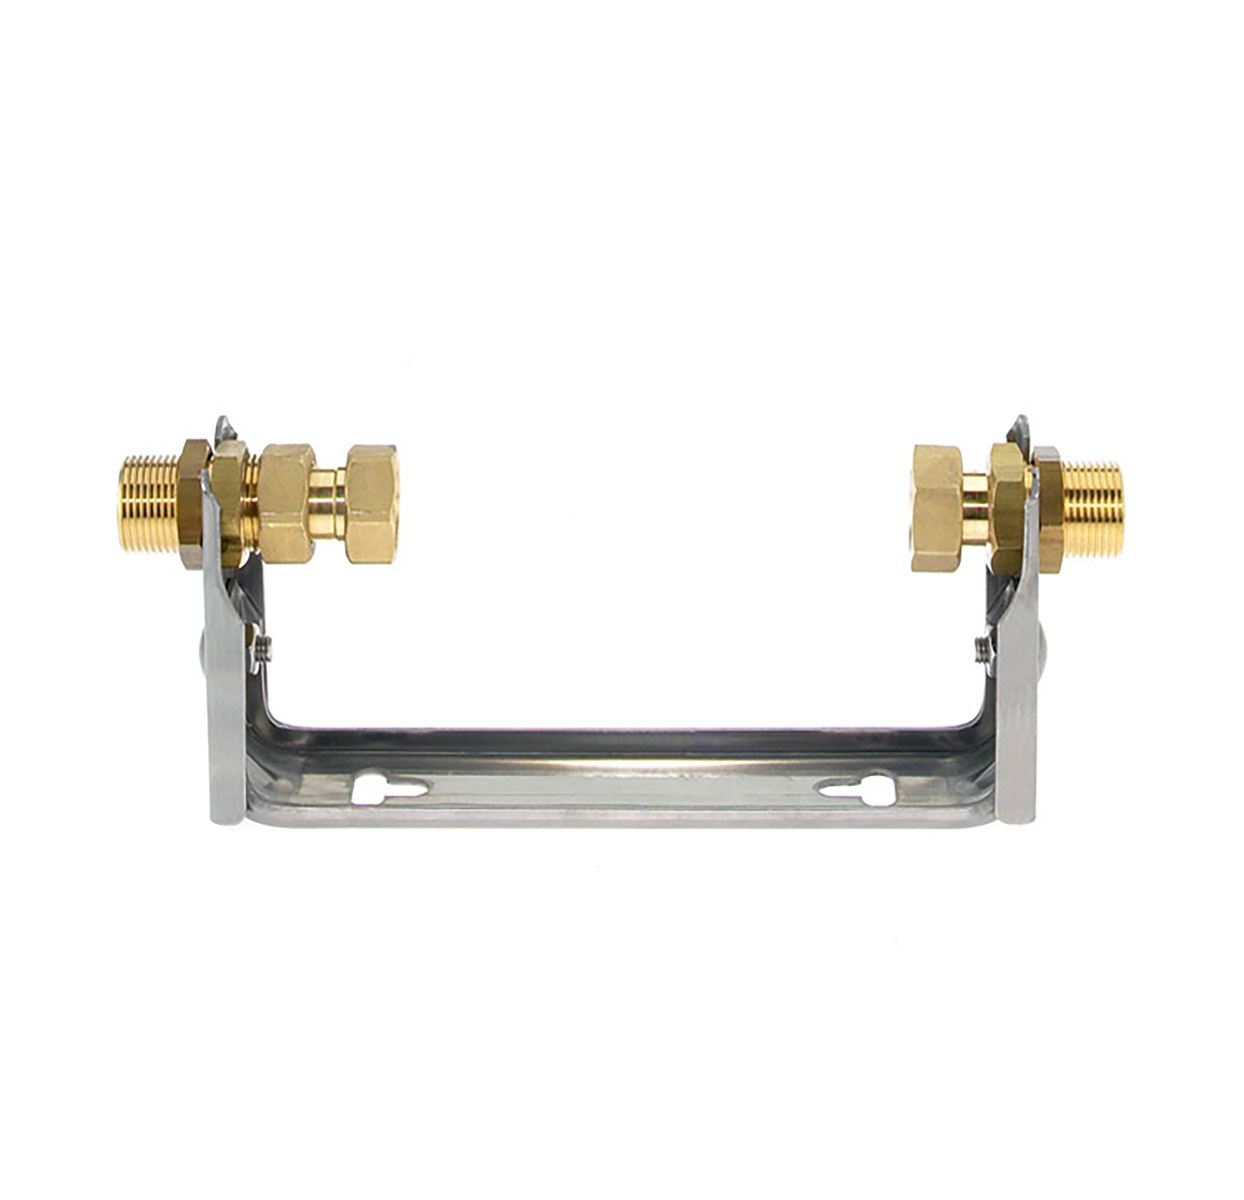 5060250 - Water meter Connection kit bracket fix, horizontal installation